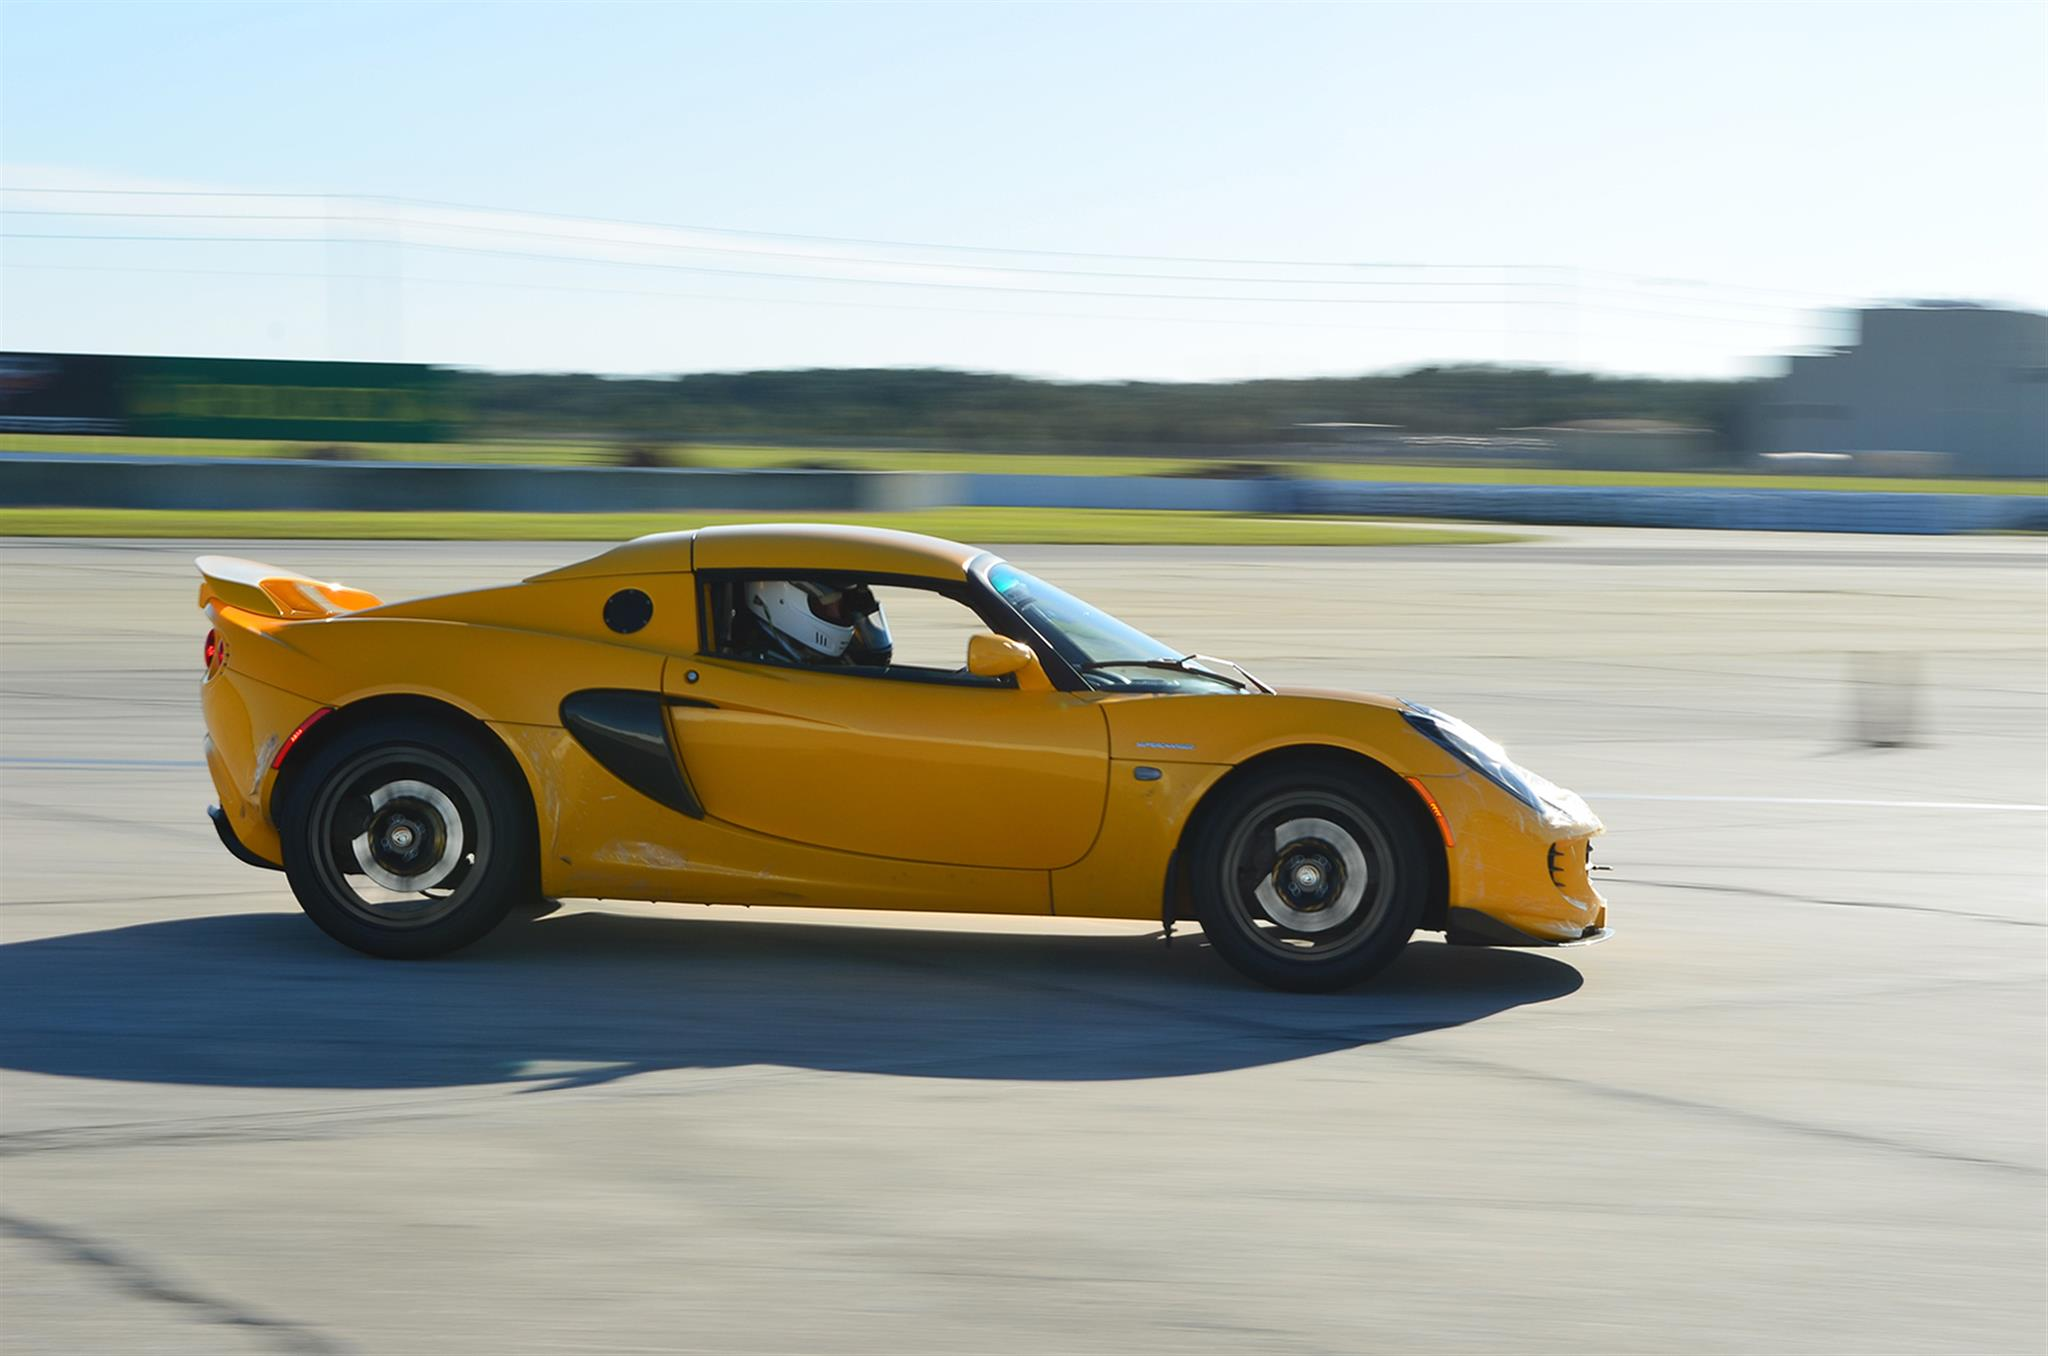 2006 Supercharged Lotus Elise -  Early stage of the project